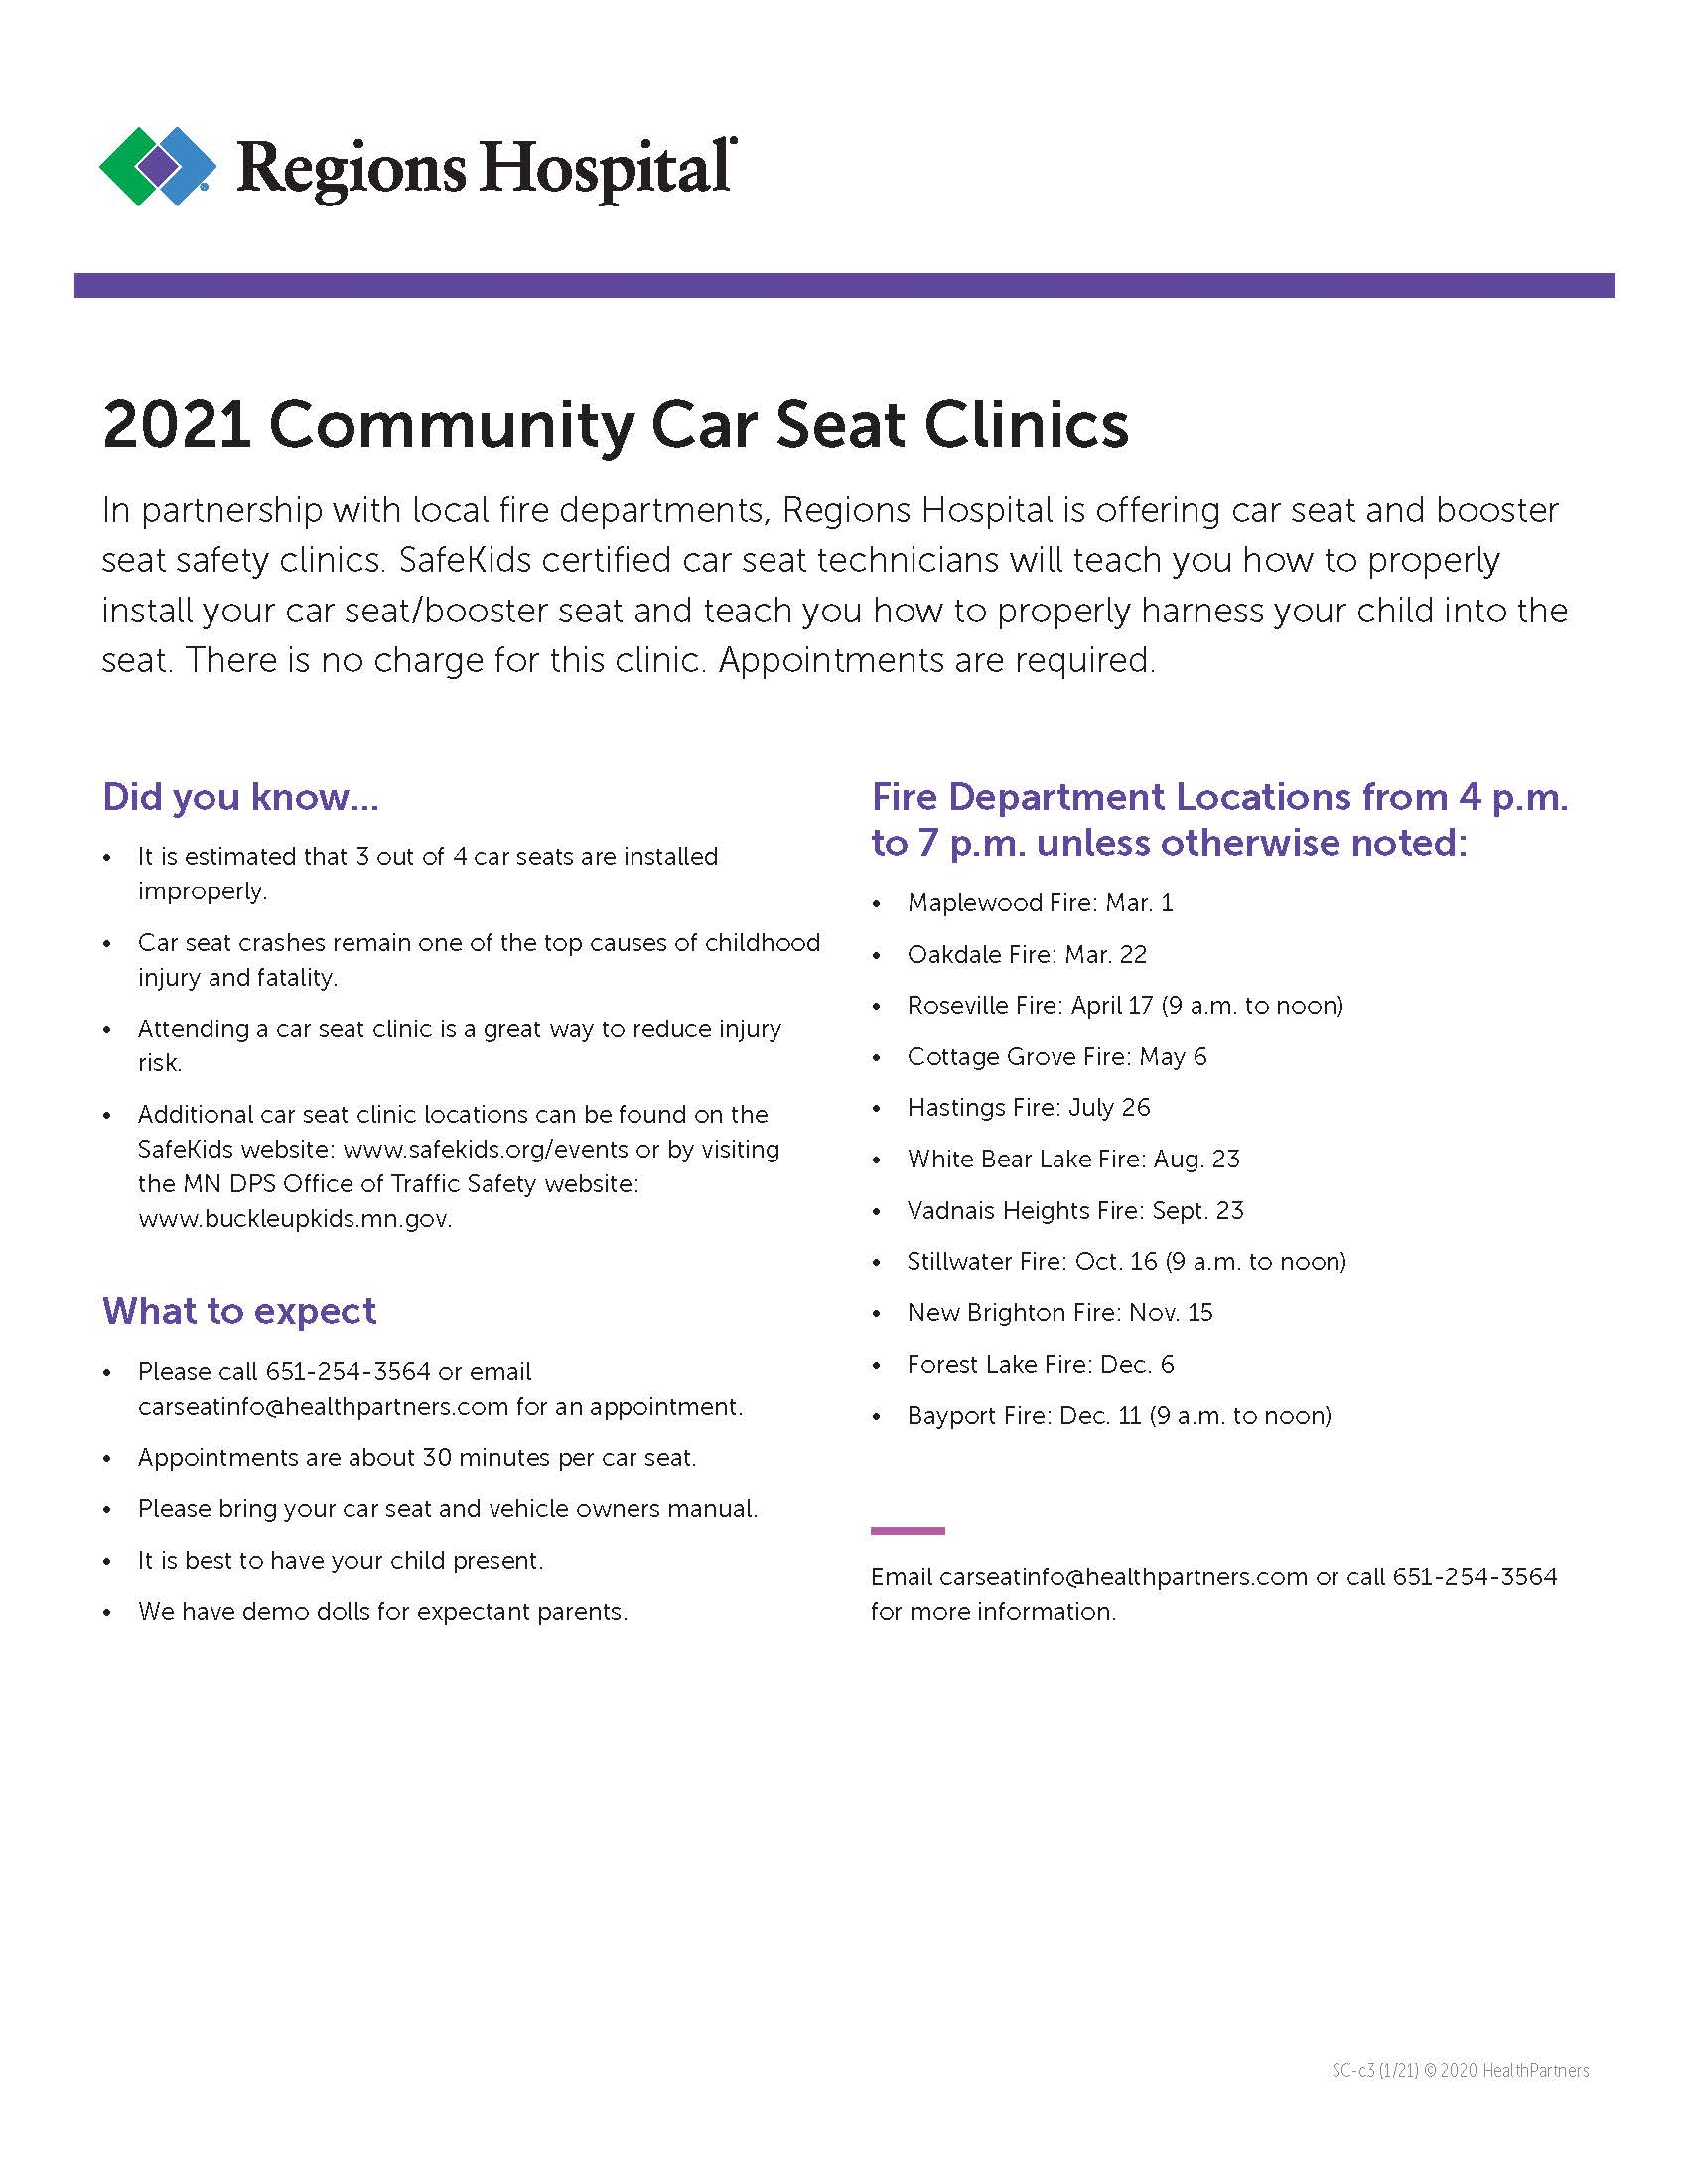 2021-CarSeatClinic Final_Page_1